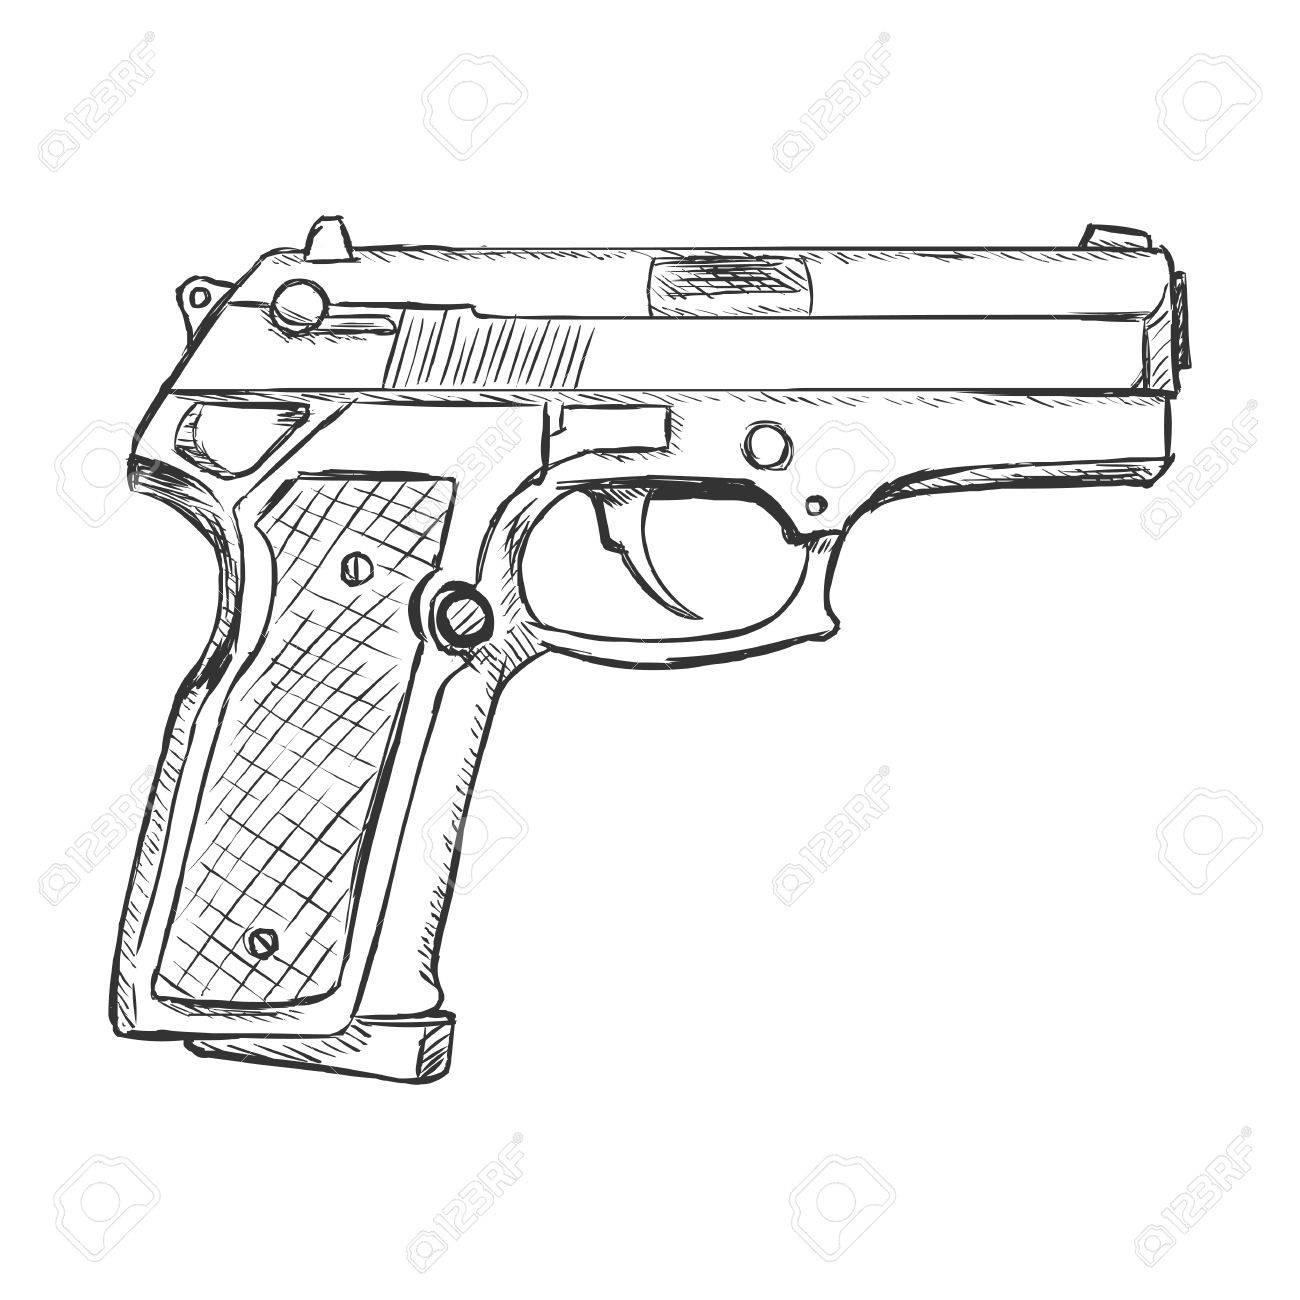 1300x1300 Vector Sketch Beretta Pistol On White Background Royalty Free